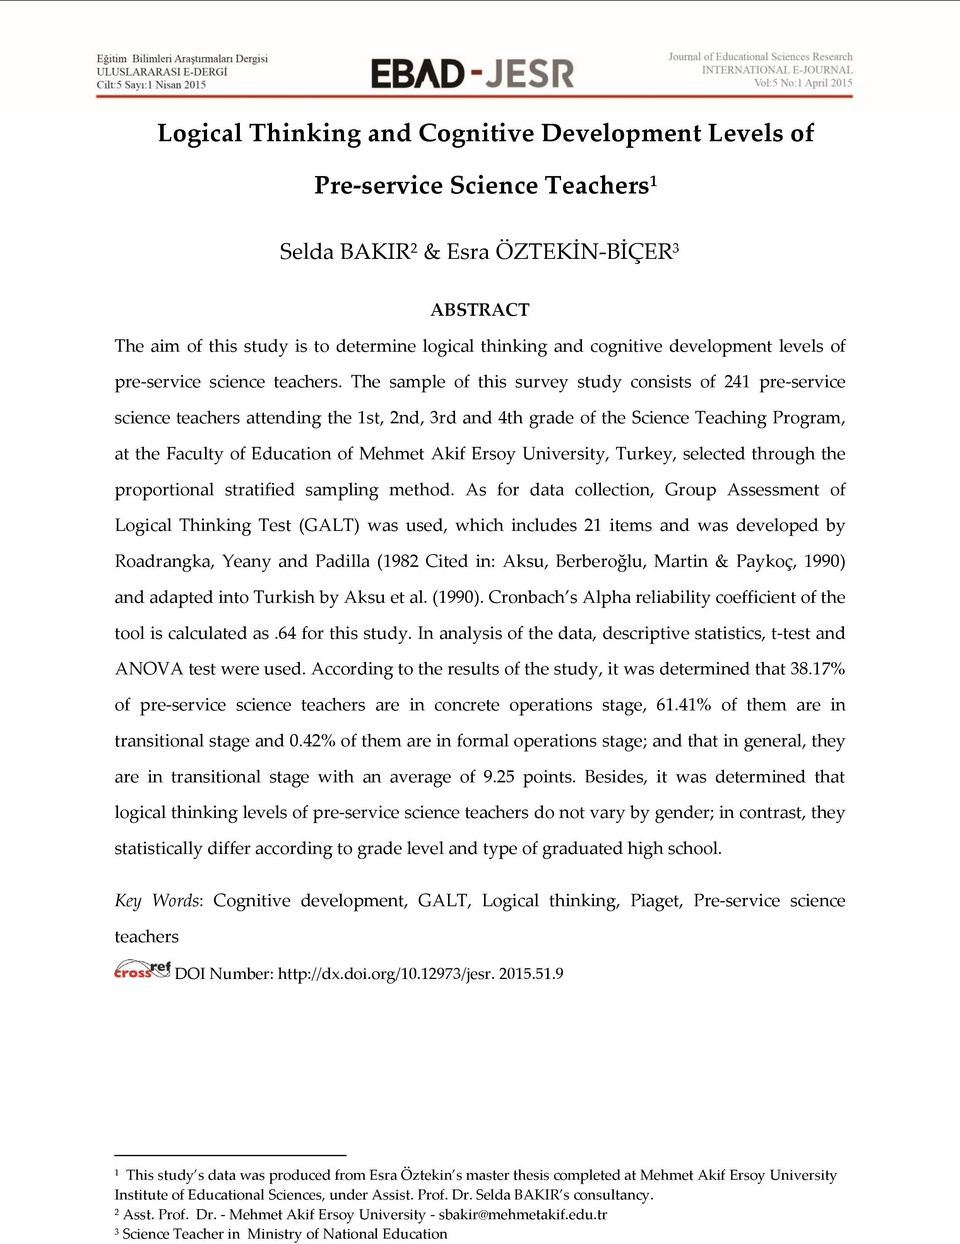 The sample of this survey study consists of 241 pre-service science teachers attending the 1st, 2nd, 3rd and 4th grade of the Science Teaching Program, at the Faculty of Education of Mehmet Akif